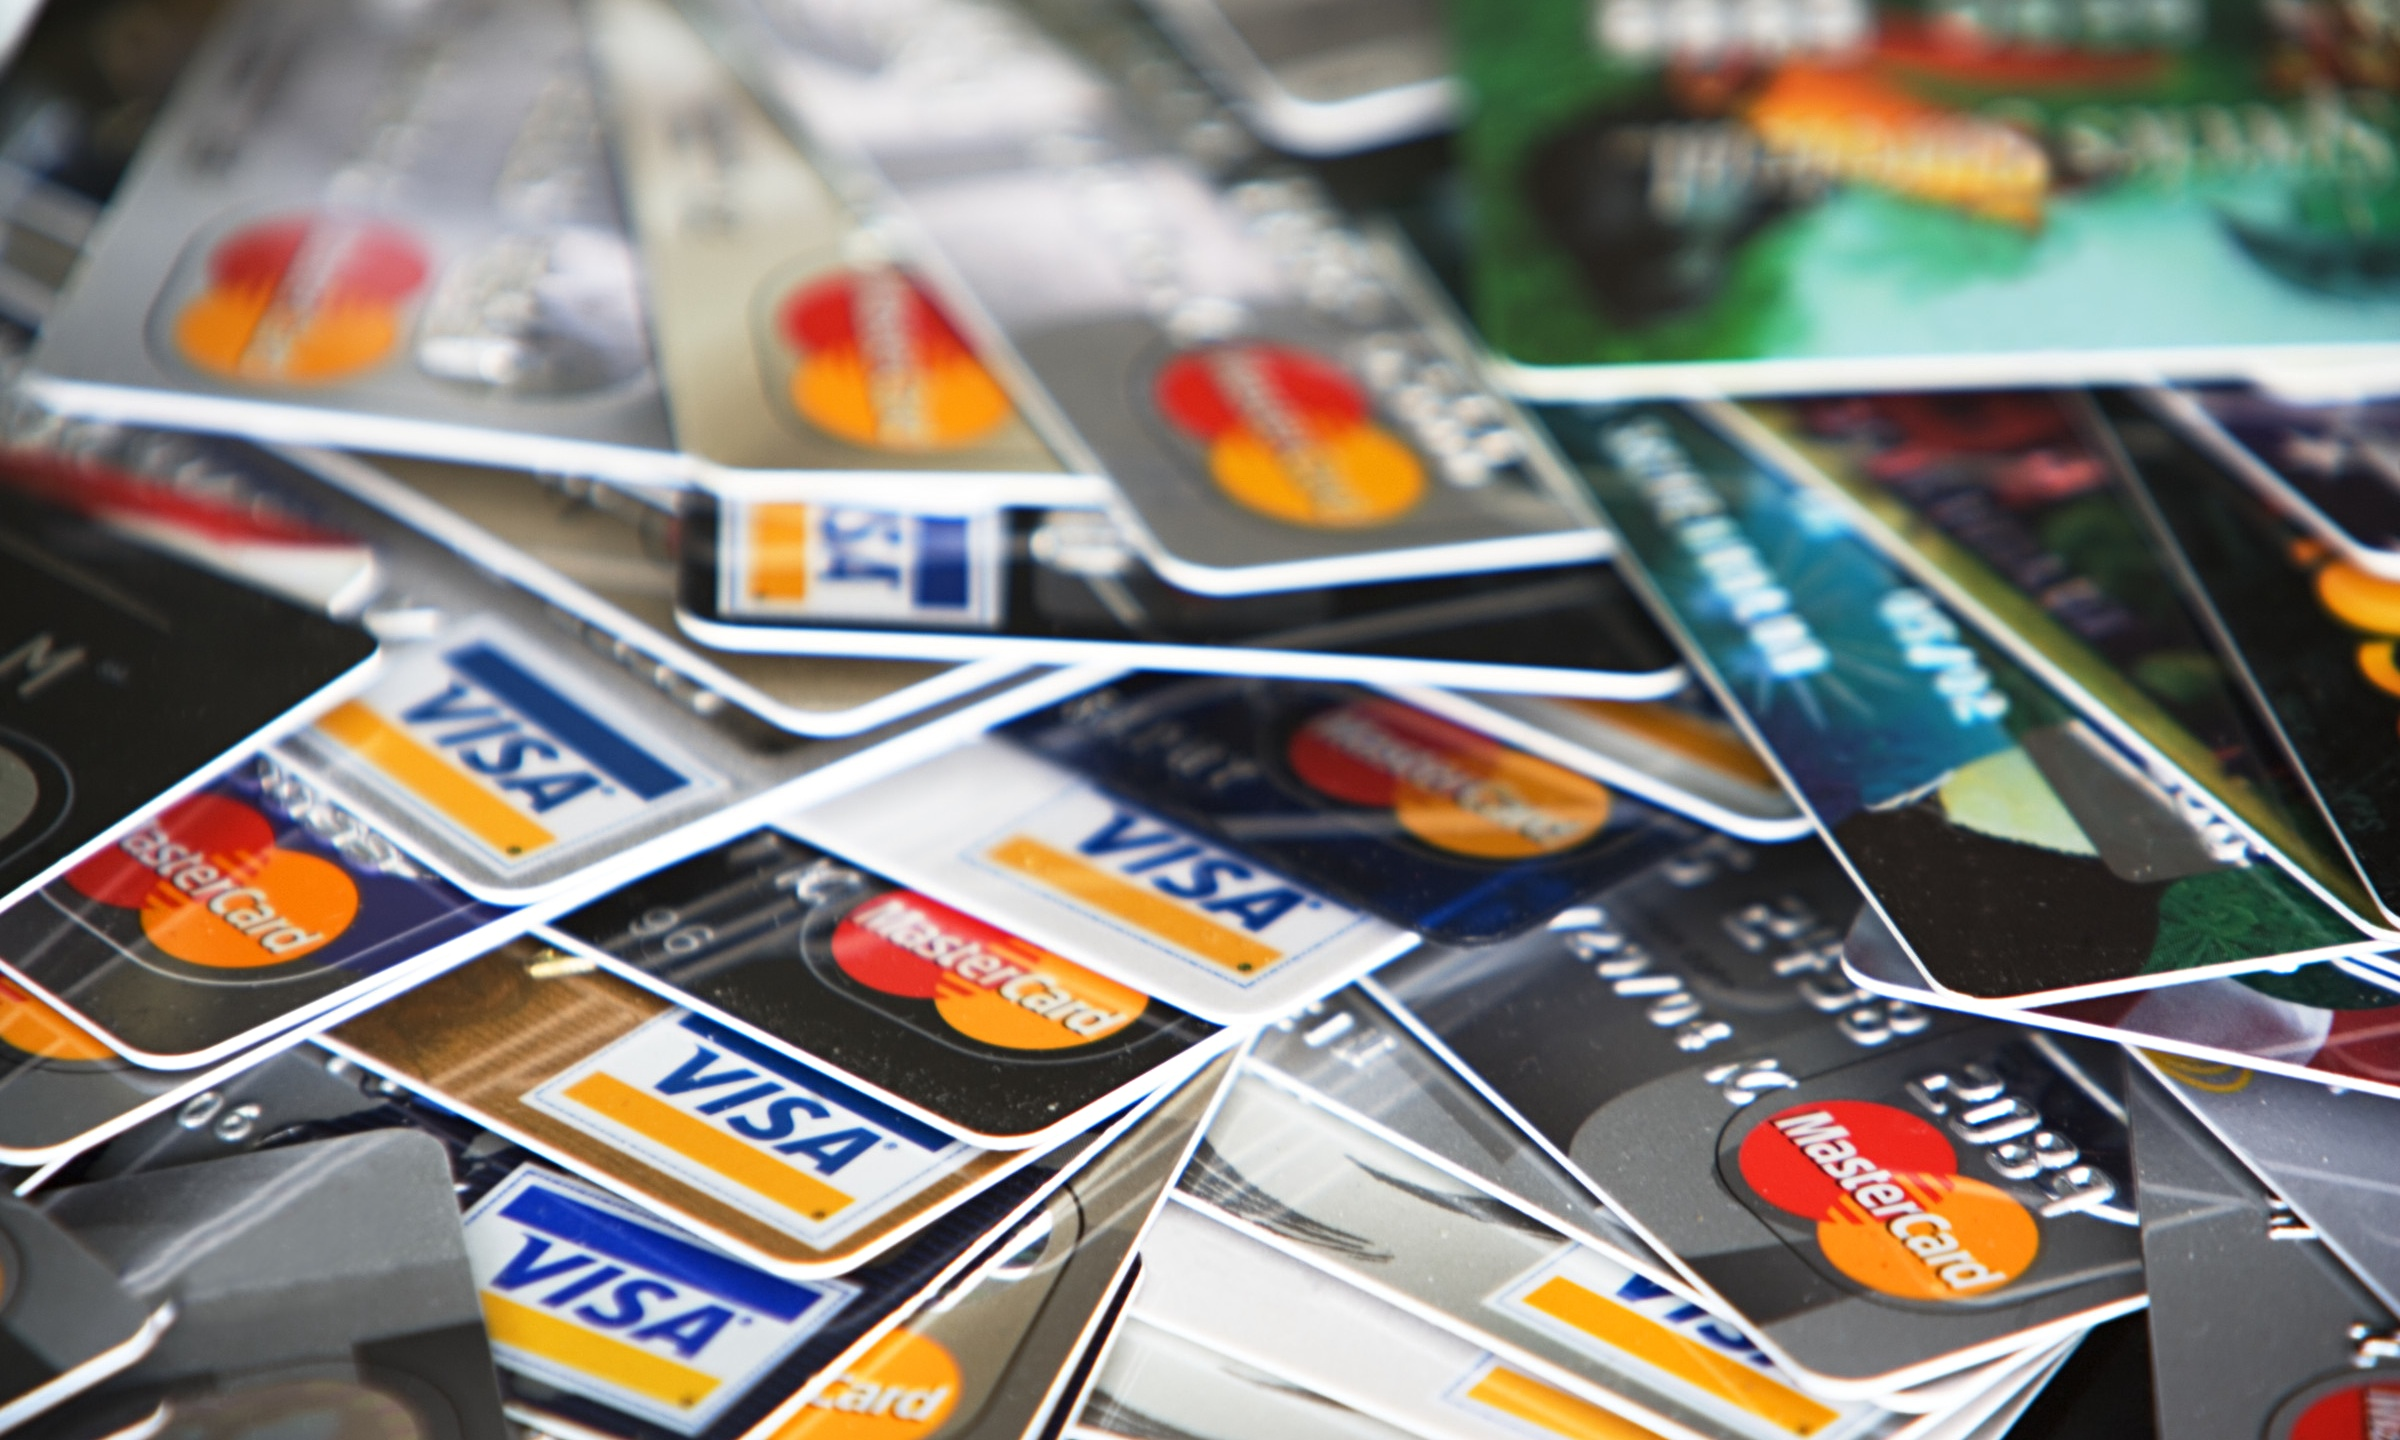 Credit card debt is on the rise.